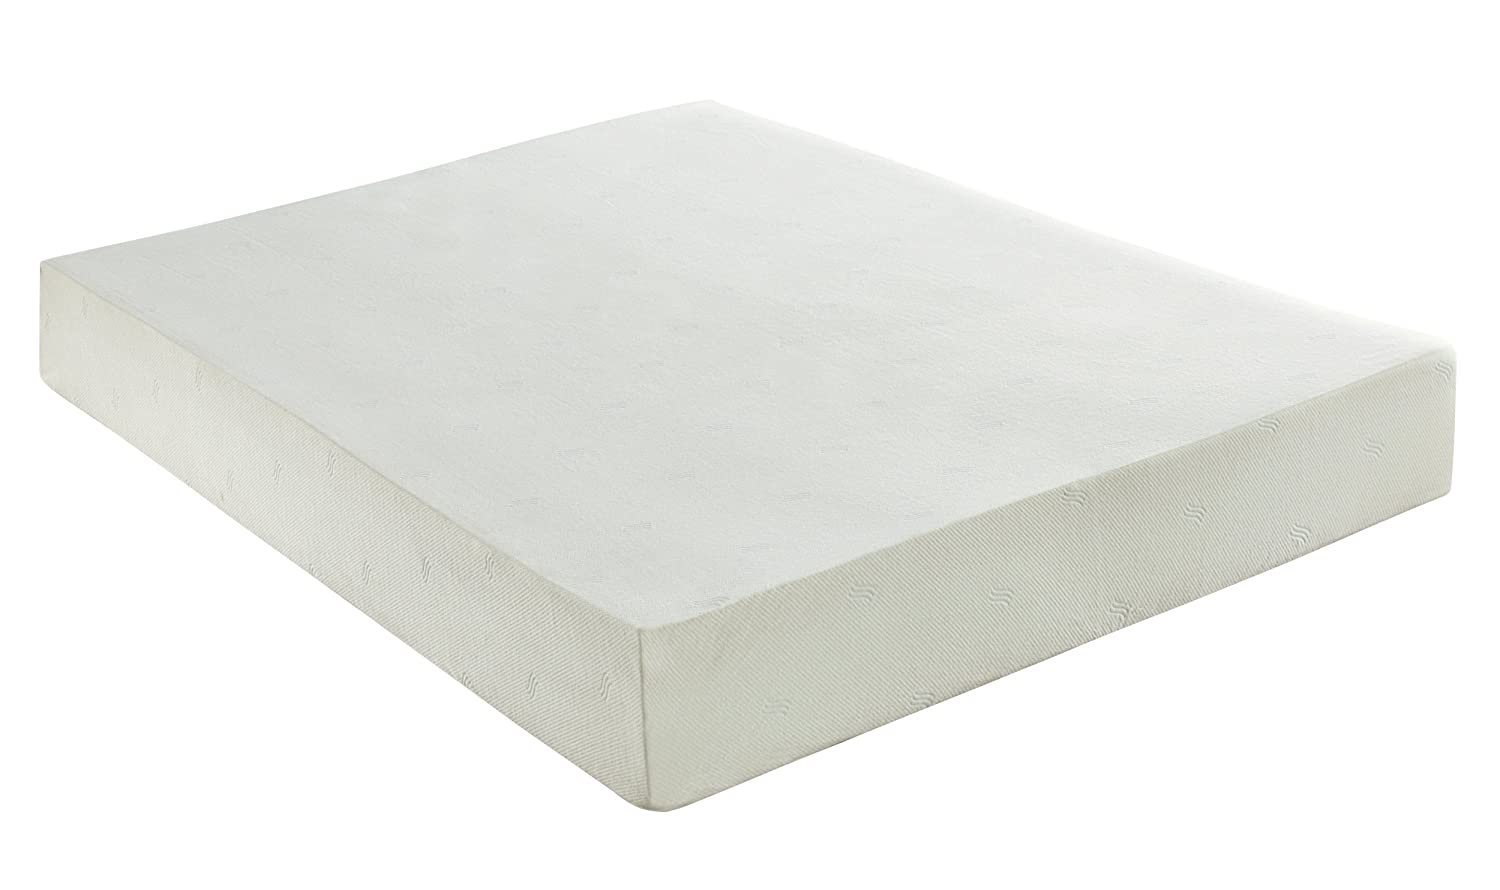 amazon com sleep innovations 8 inch suretemp memory foam mattress